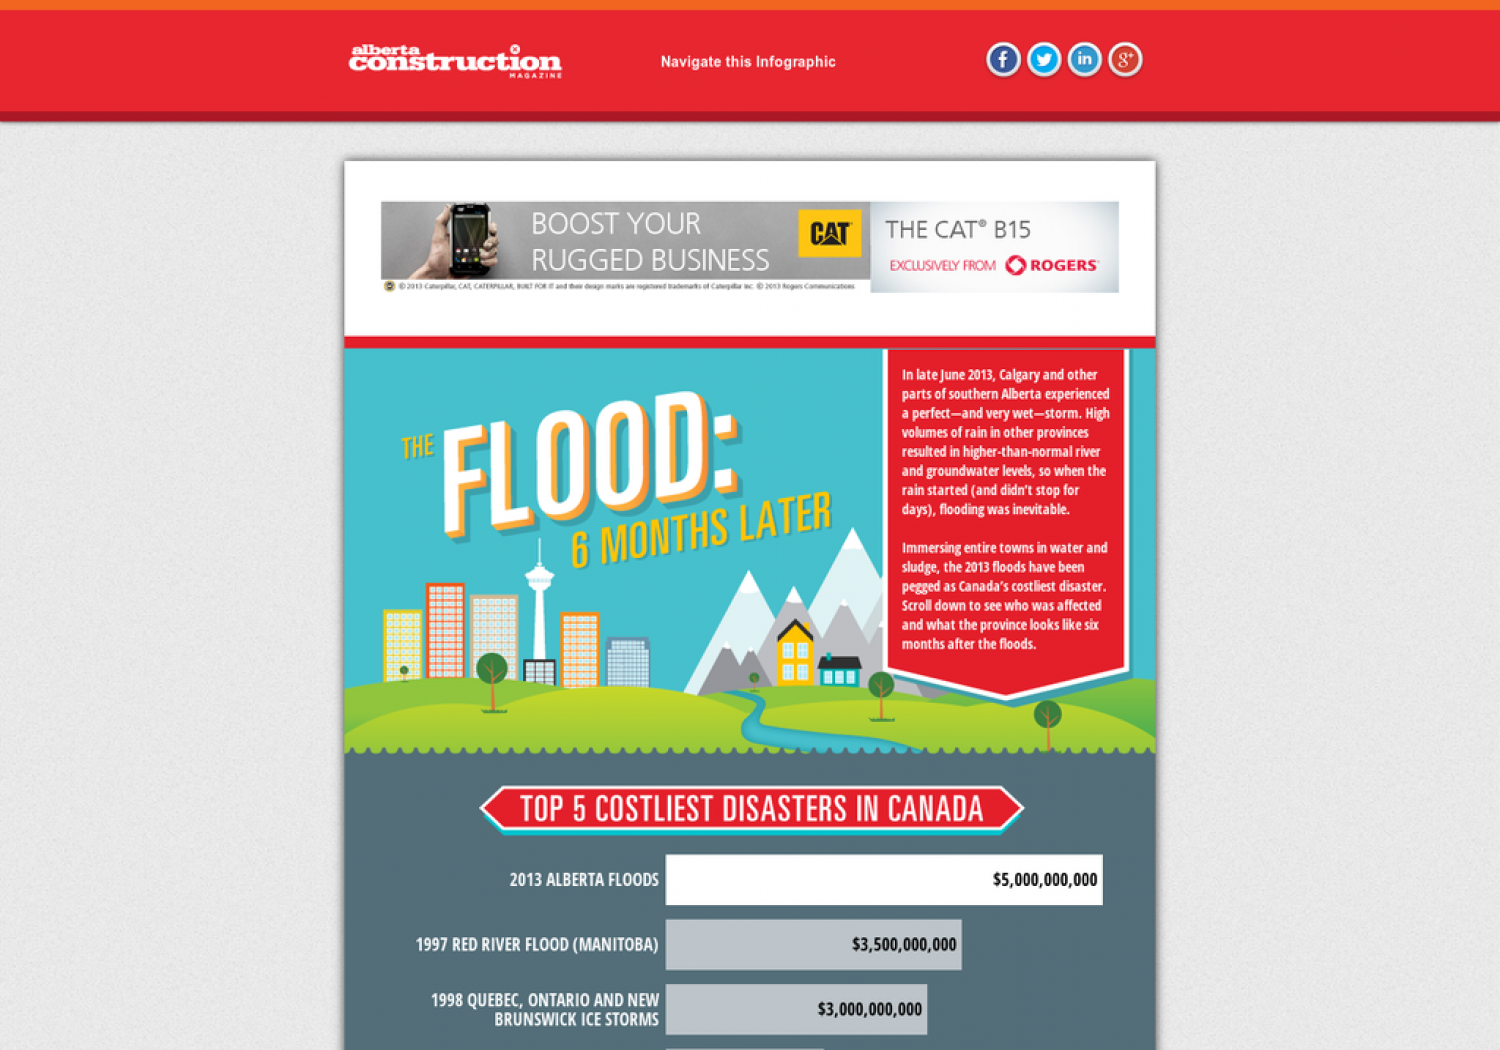 The Flood: 6 months later Infographic